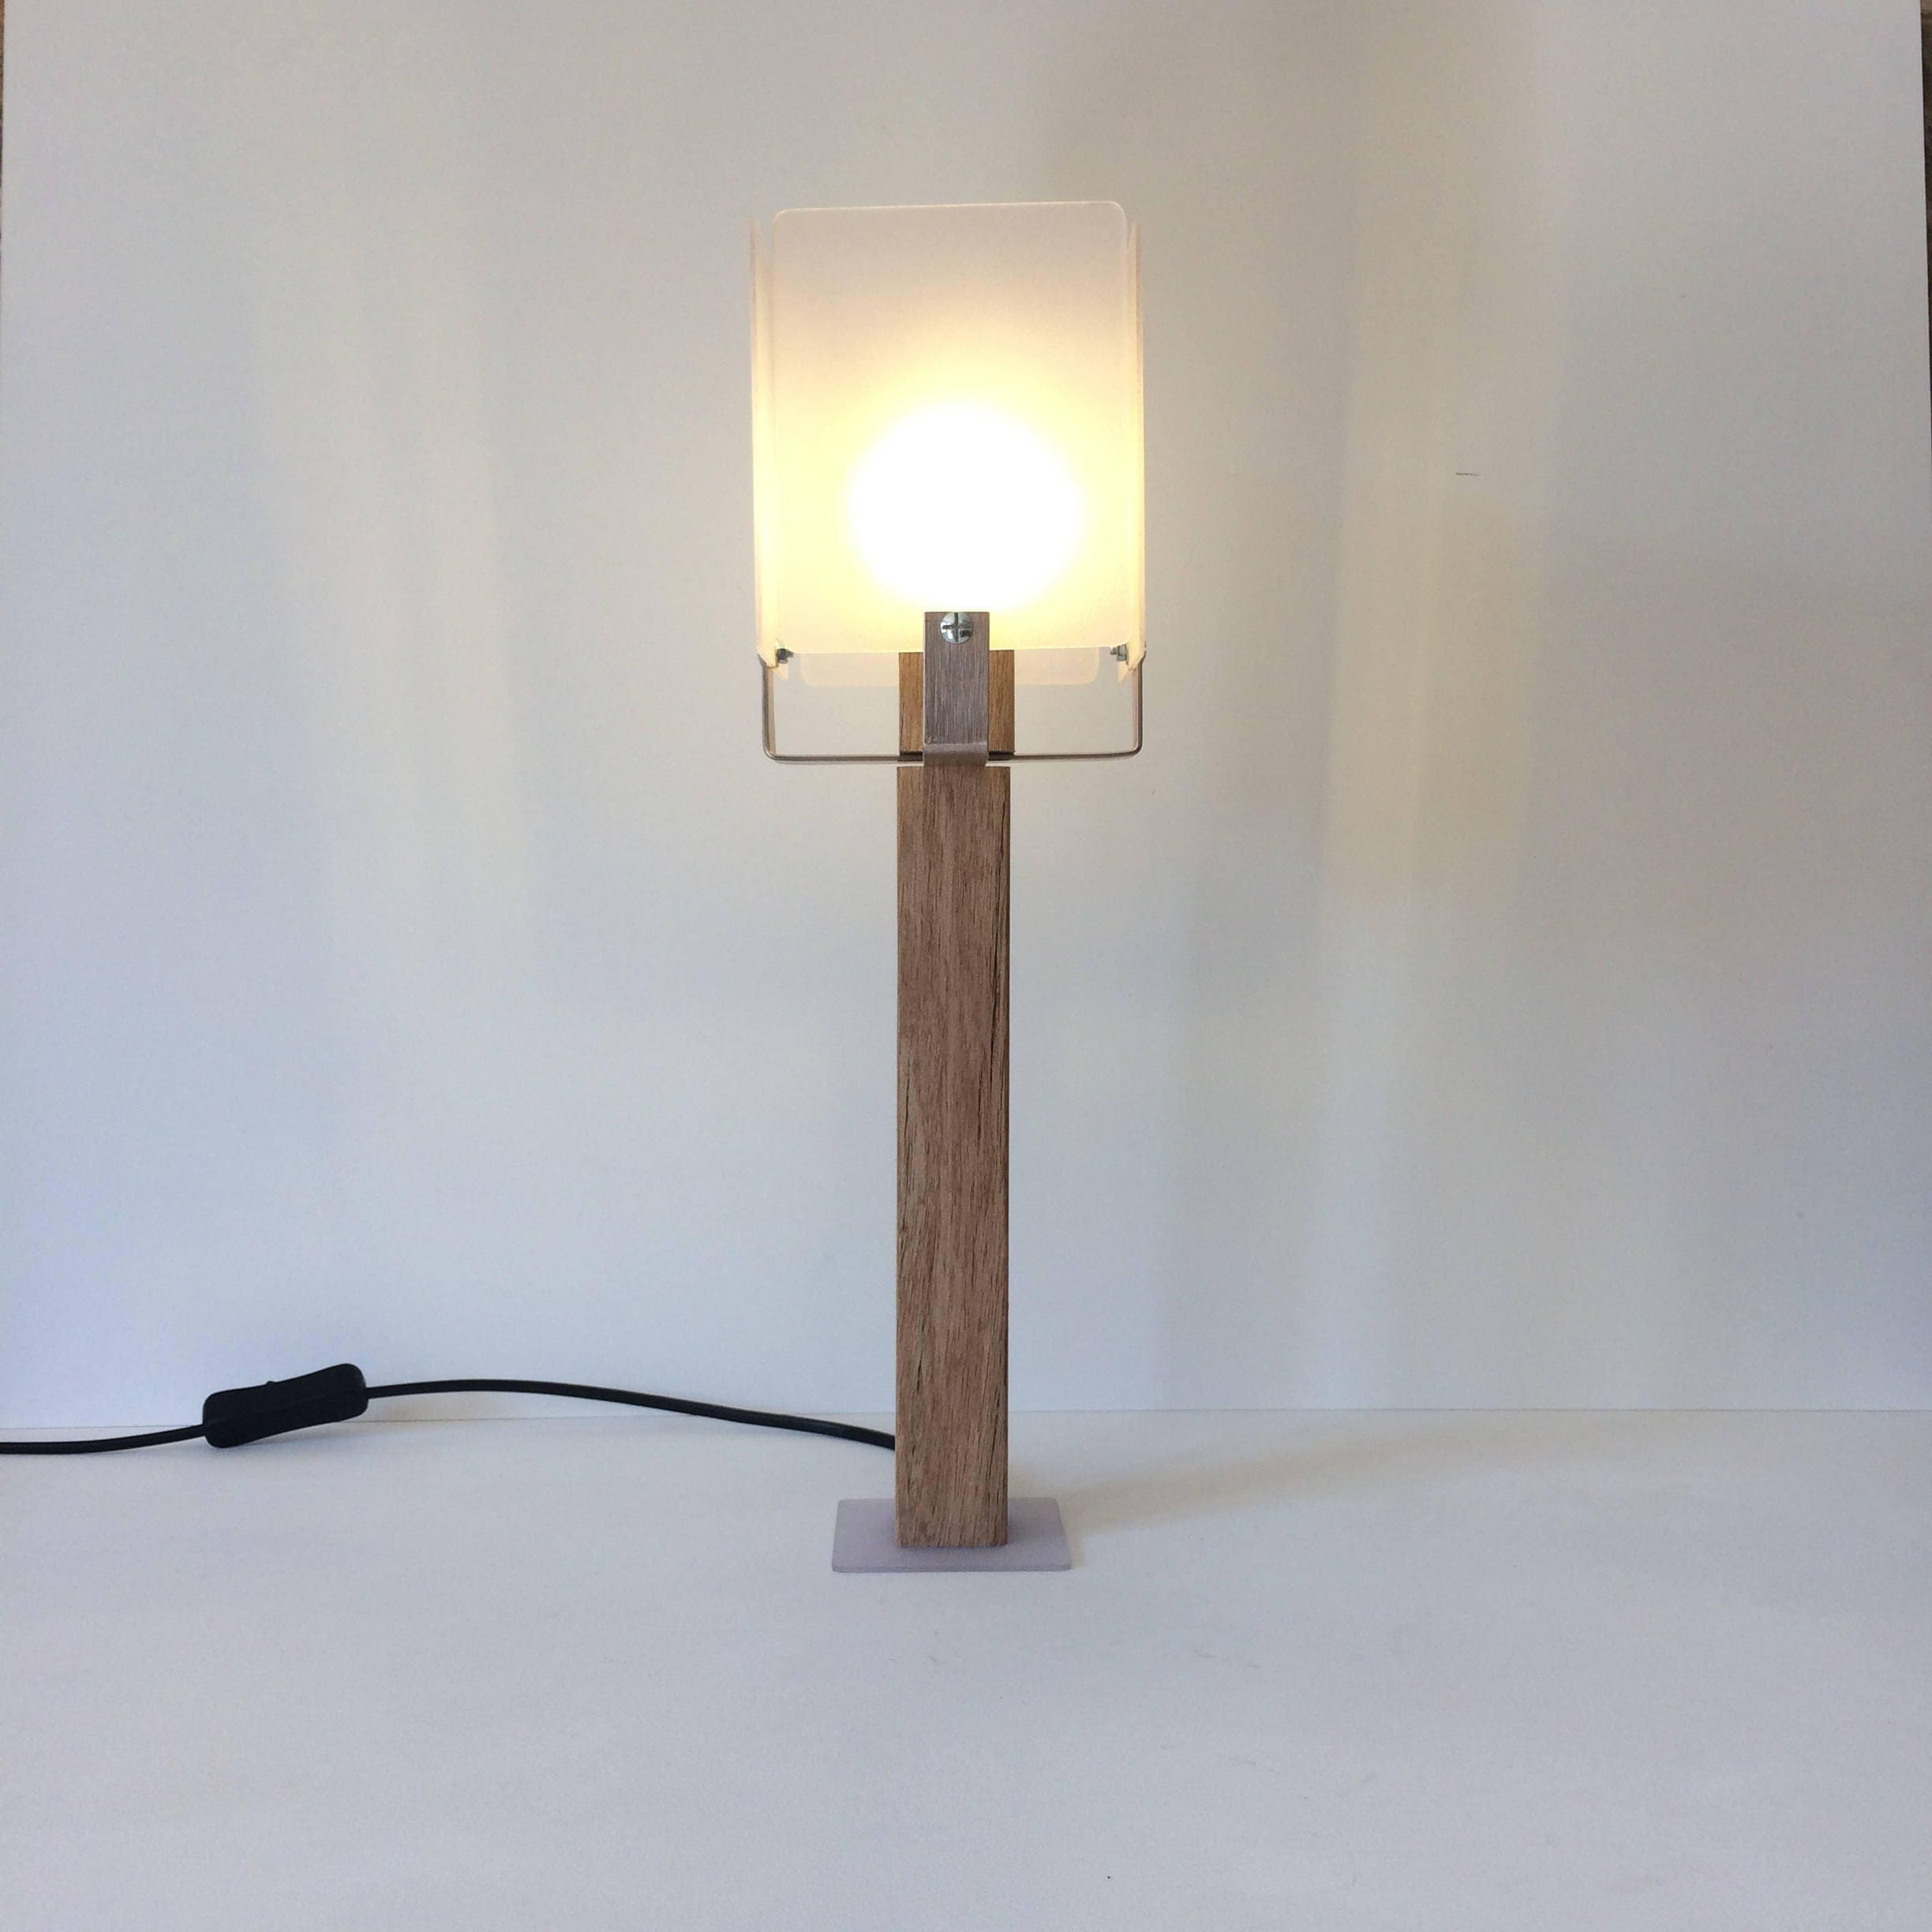 Modern Table Lamp, Office Desk Lamp, Wooden Lamp, Plastic Lamp, Stylish Lamp,  Contemporary Lamp, Modern Lighting, Modern Man Gift, Lampshade